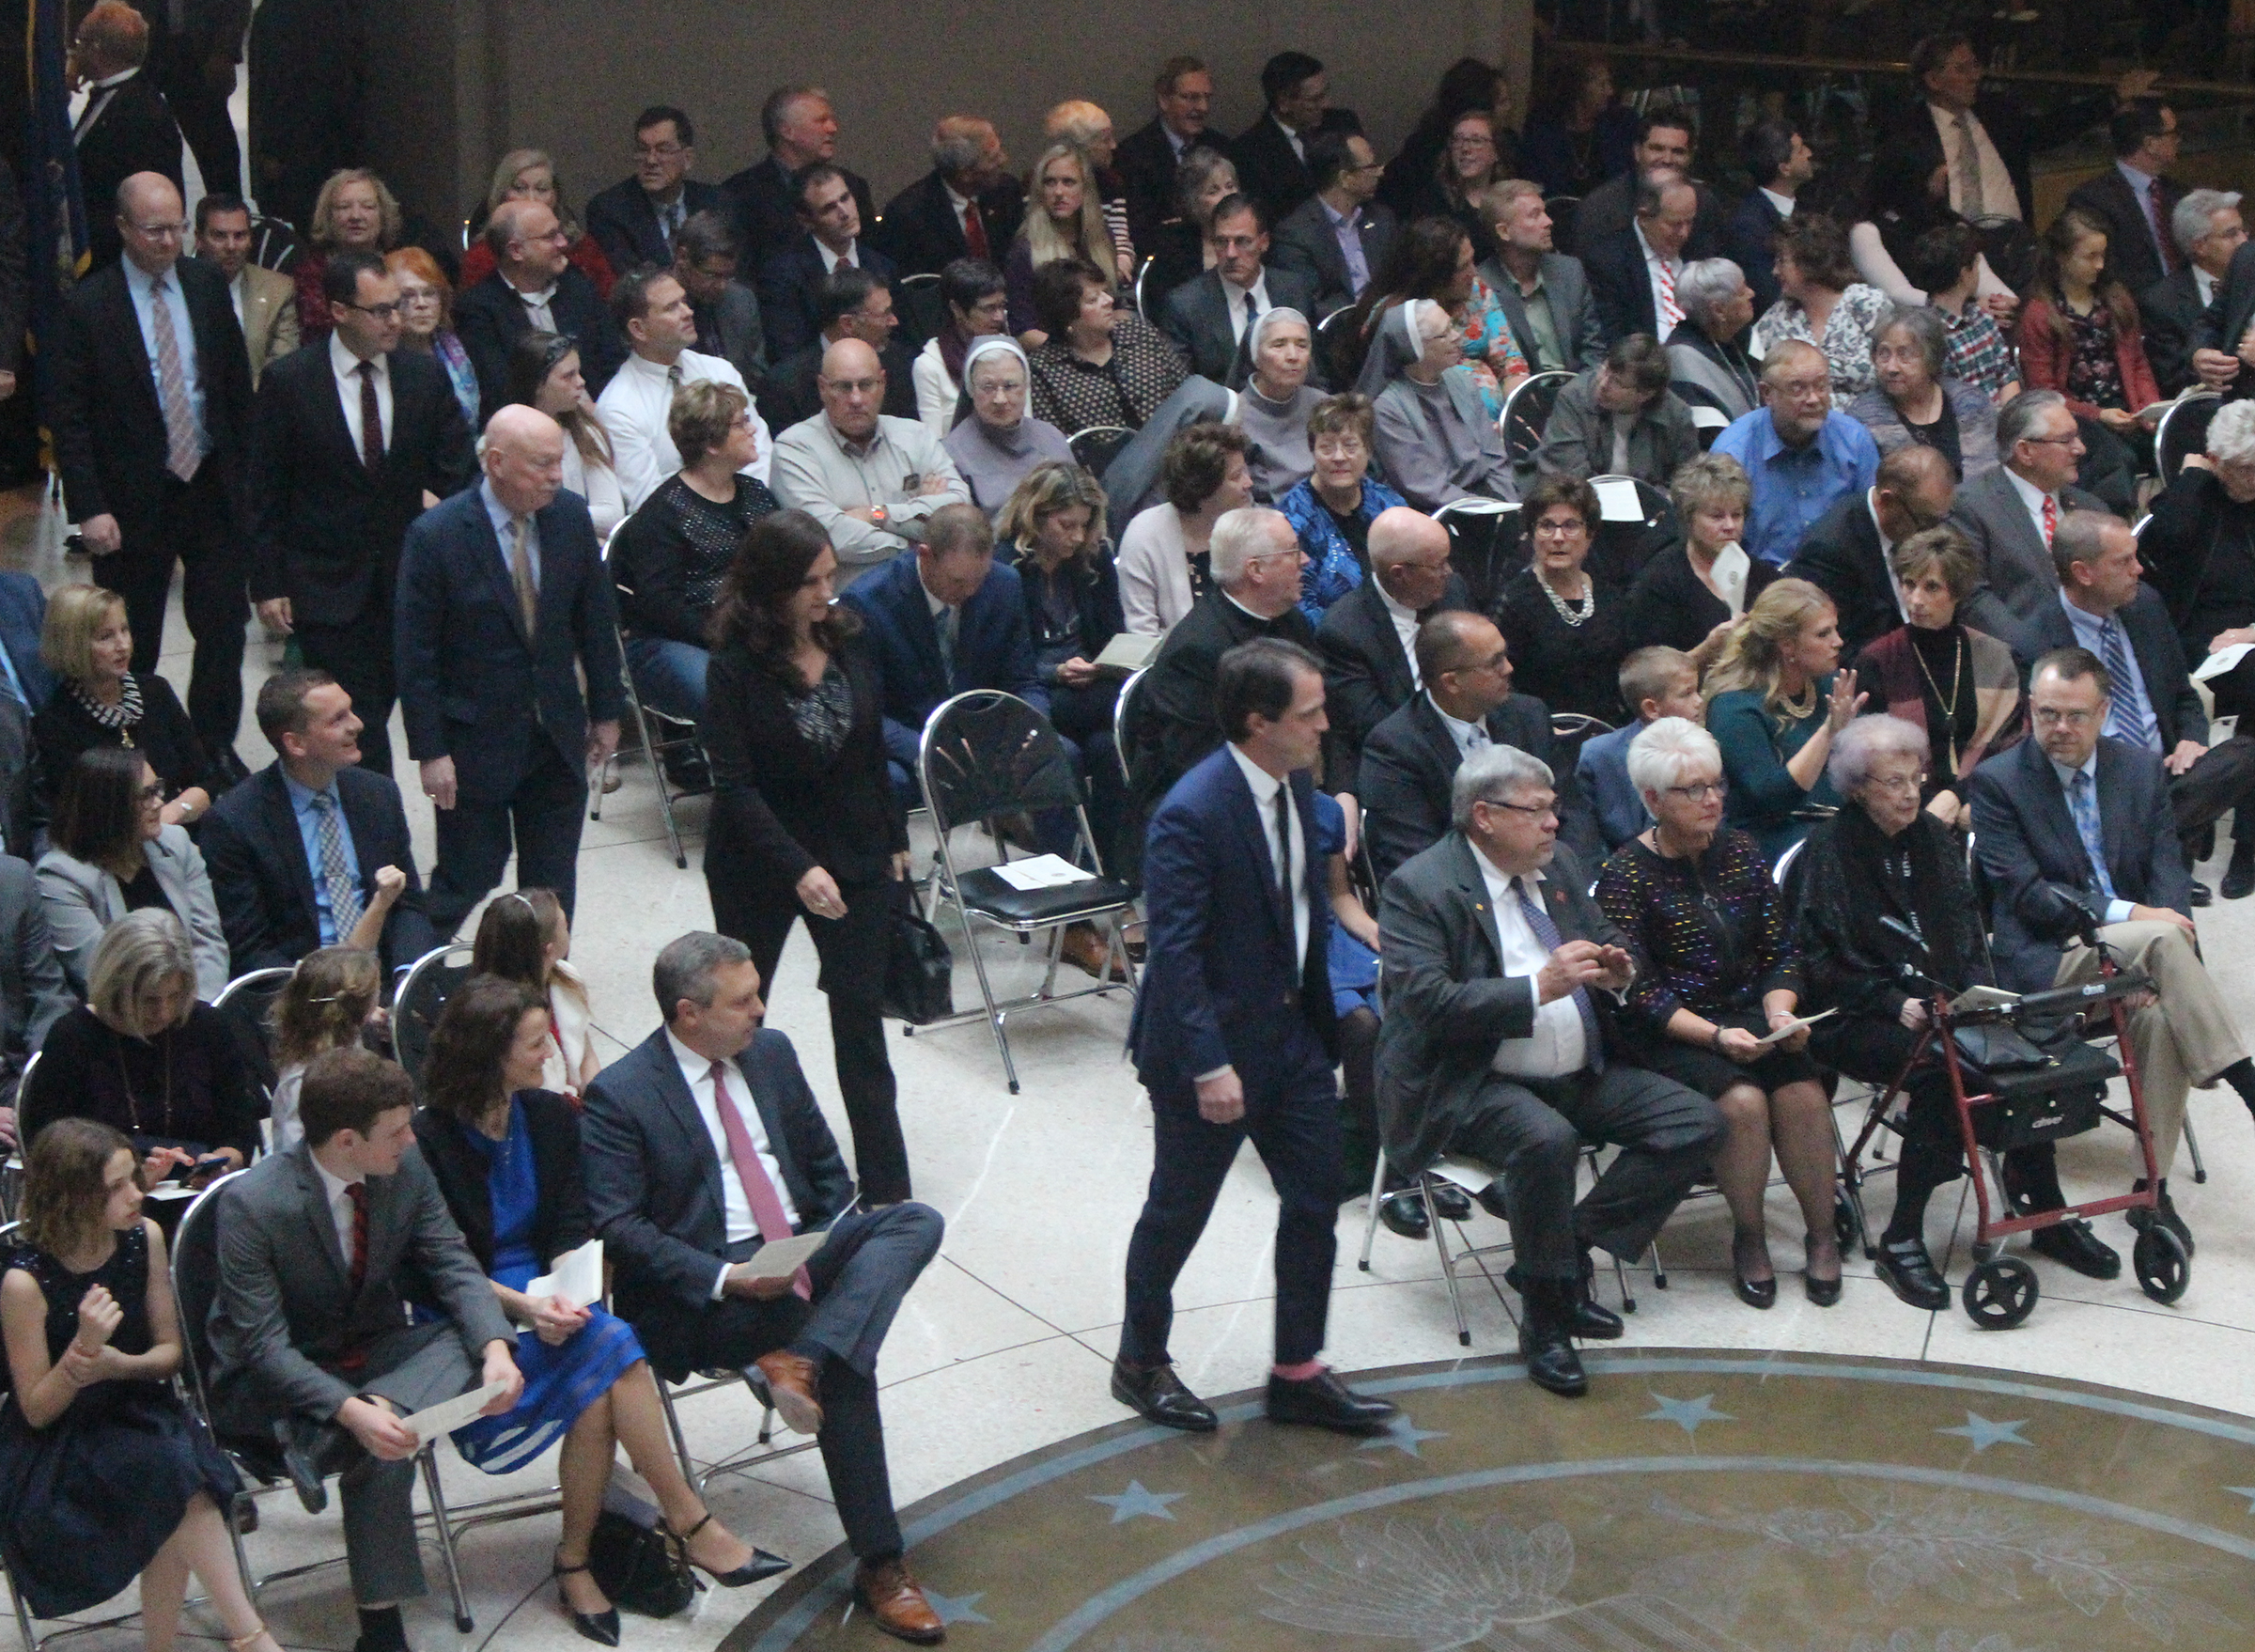 A processionals of judges and other dignities and judges began Brian C. Buescher's investiture ceremony at the Hruska Federal Courthouse on Friday, Nov. 15, 2019. (Photo by Scott Stewart)